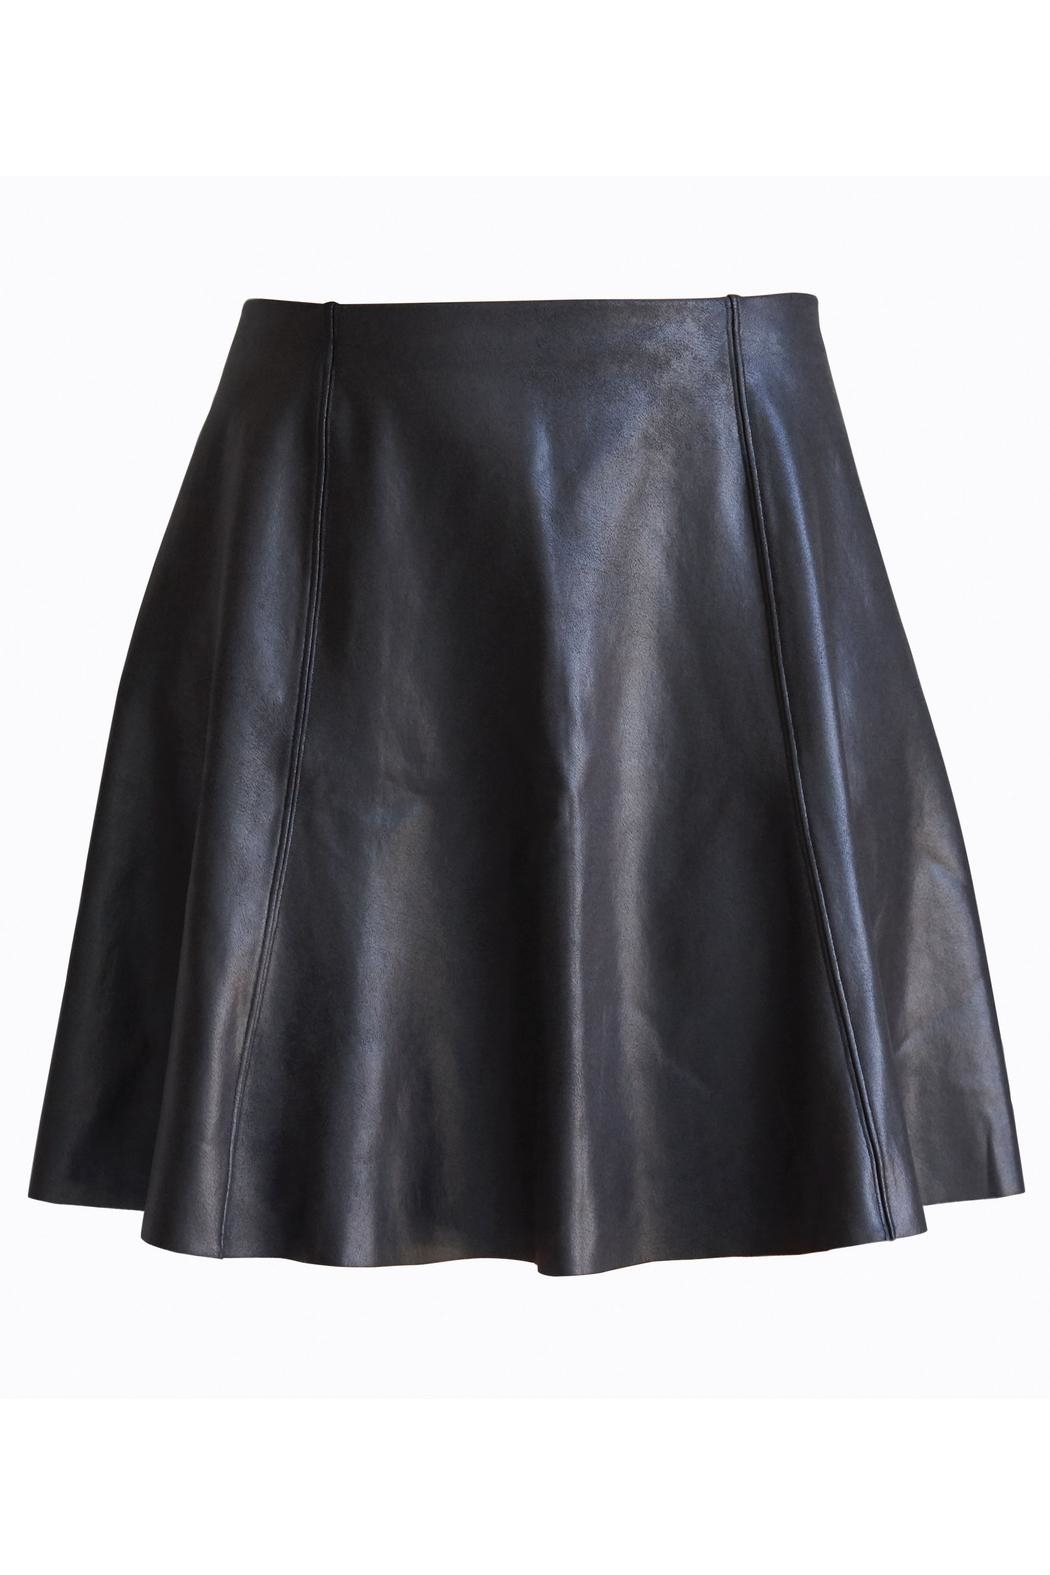 Spanx Faux-Leather Flouncy Skirt - Front Full Image